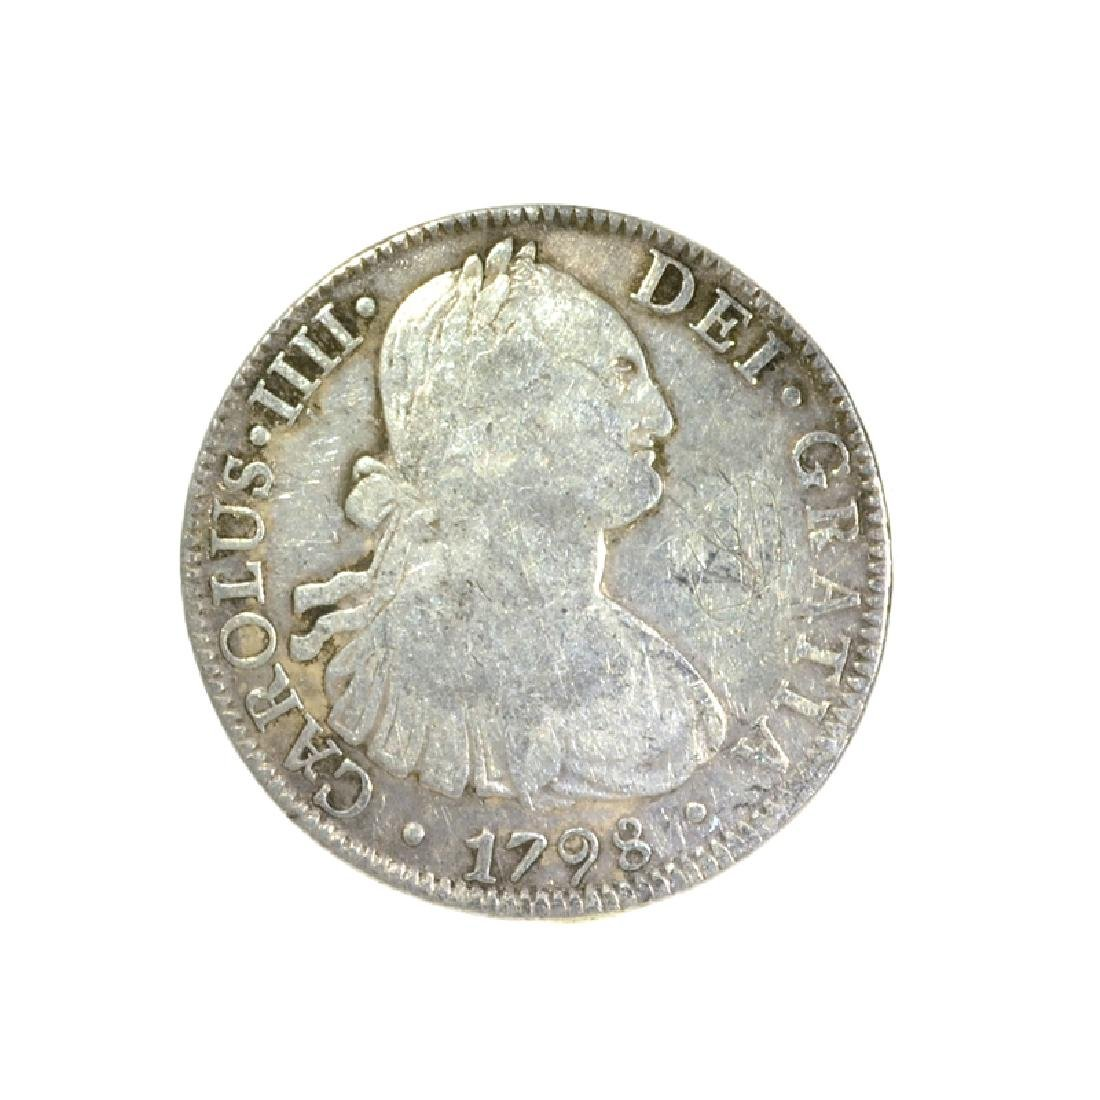 1798 Eigth Reales American First Silver Dollar Coin